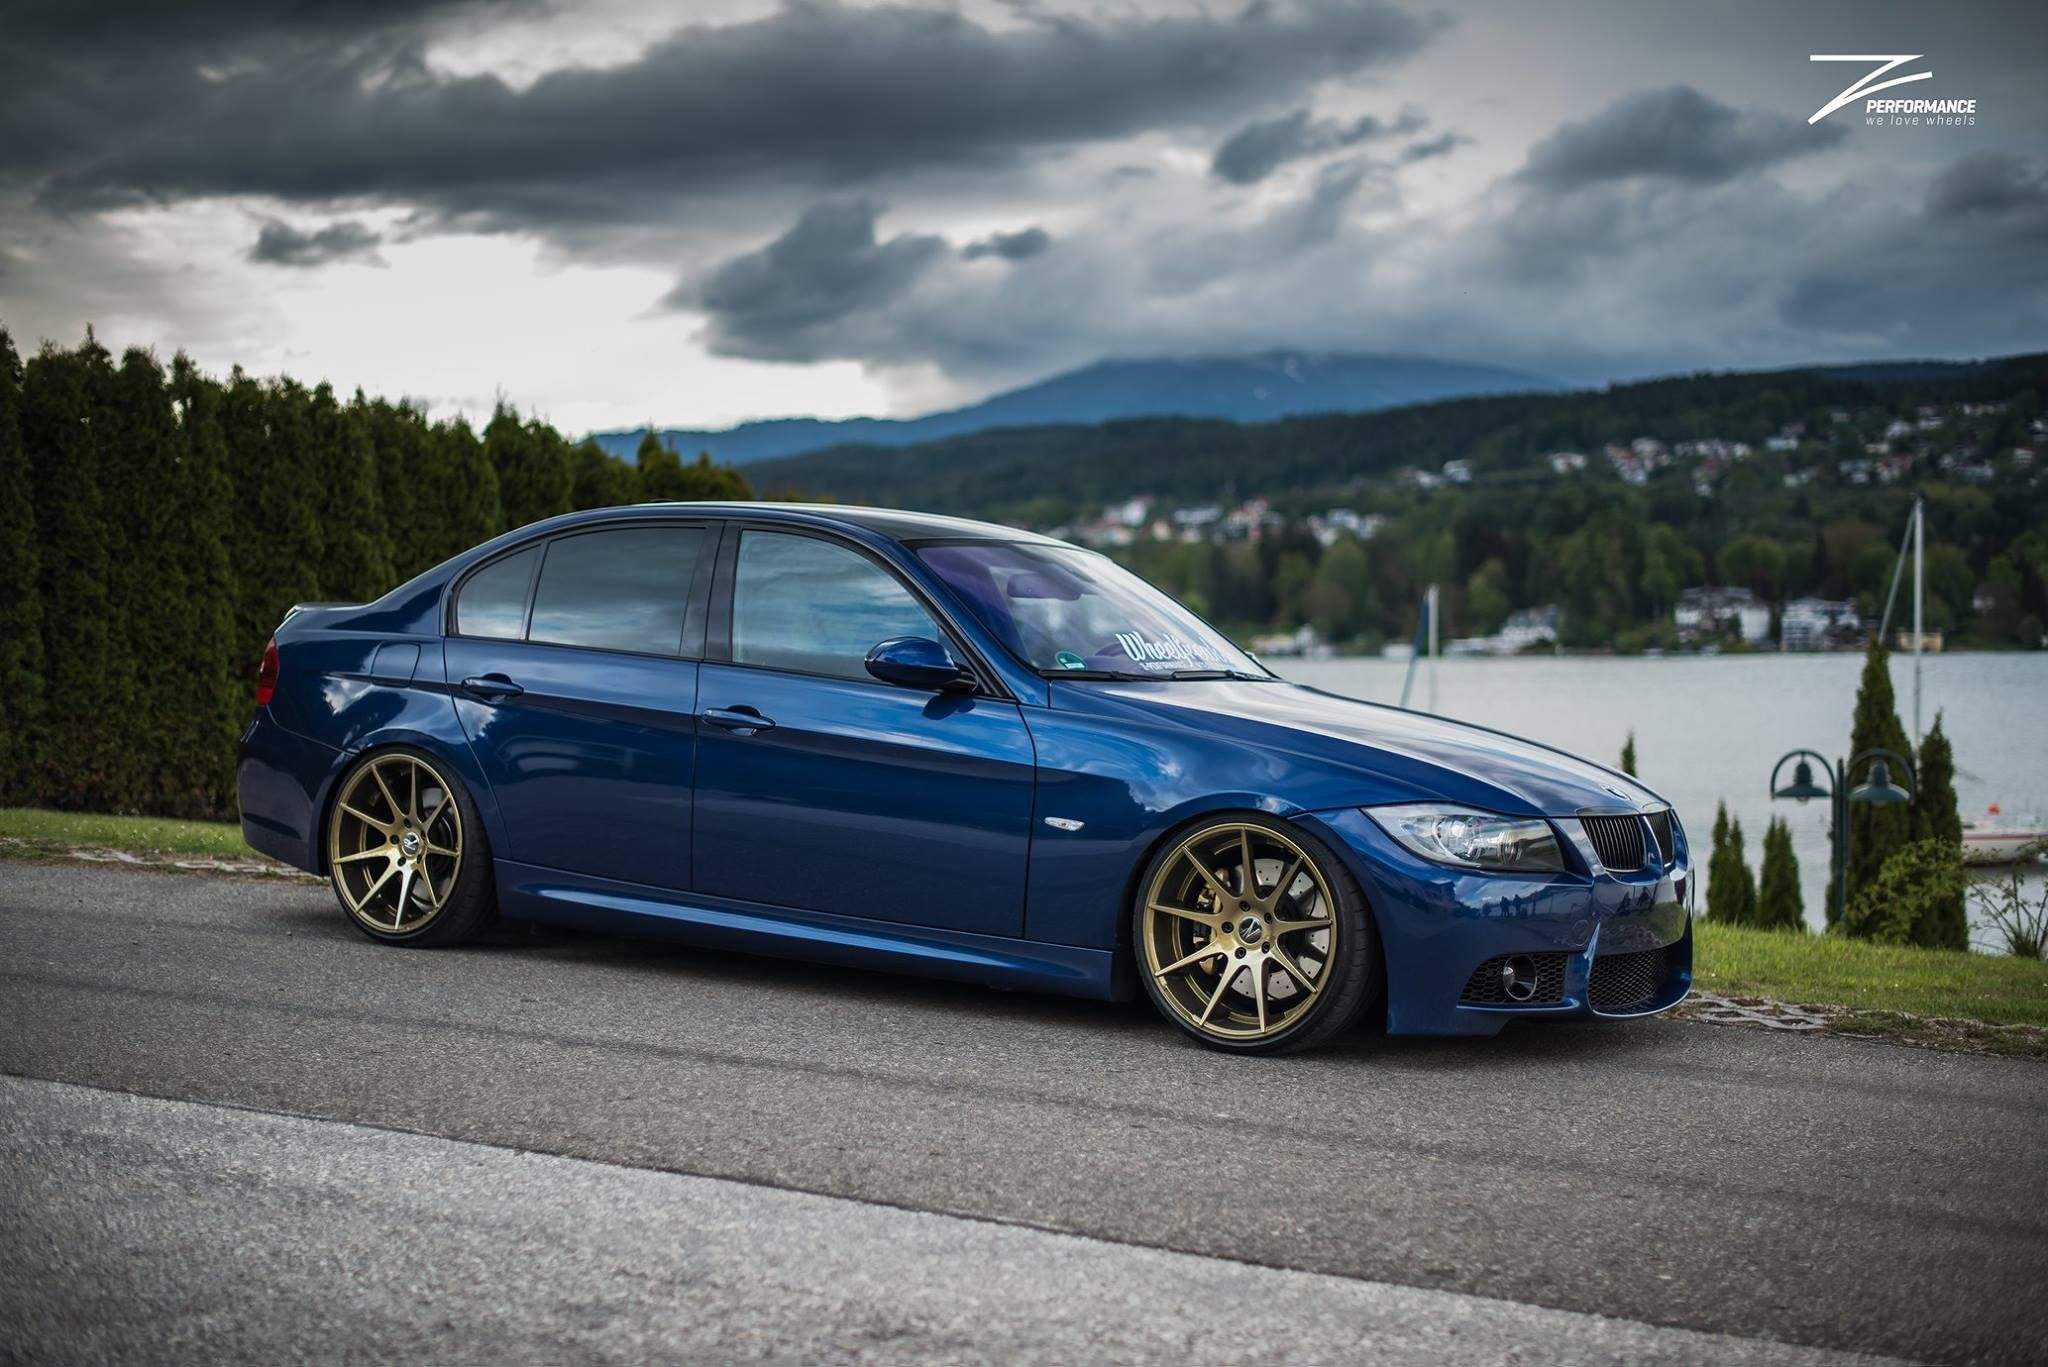 hight resolution of  bmw e90 335i sedan xdrive mpackage blue provocative eyes sexy hot badass live l fe love follow your heart bmwlife